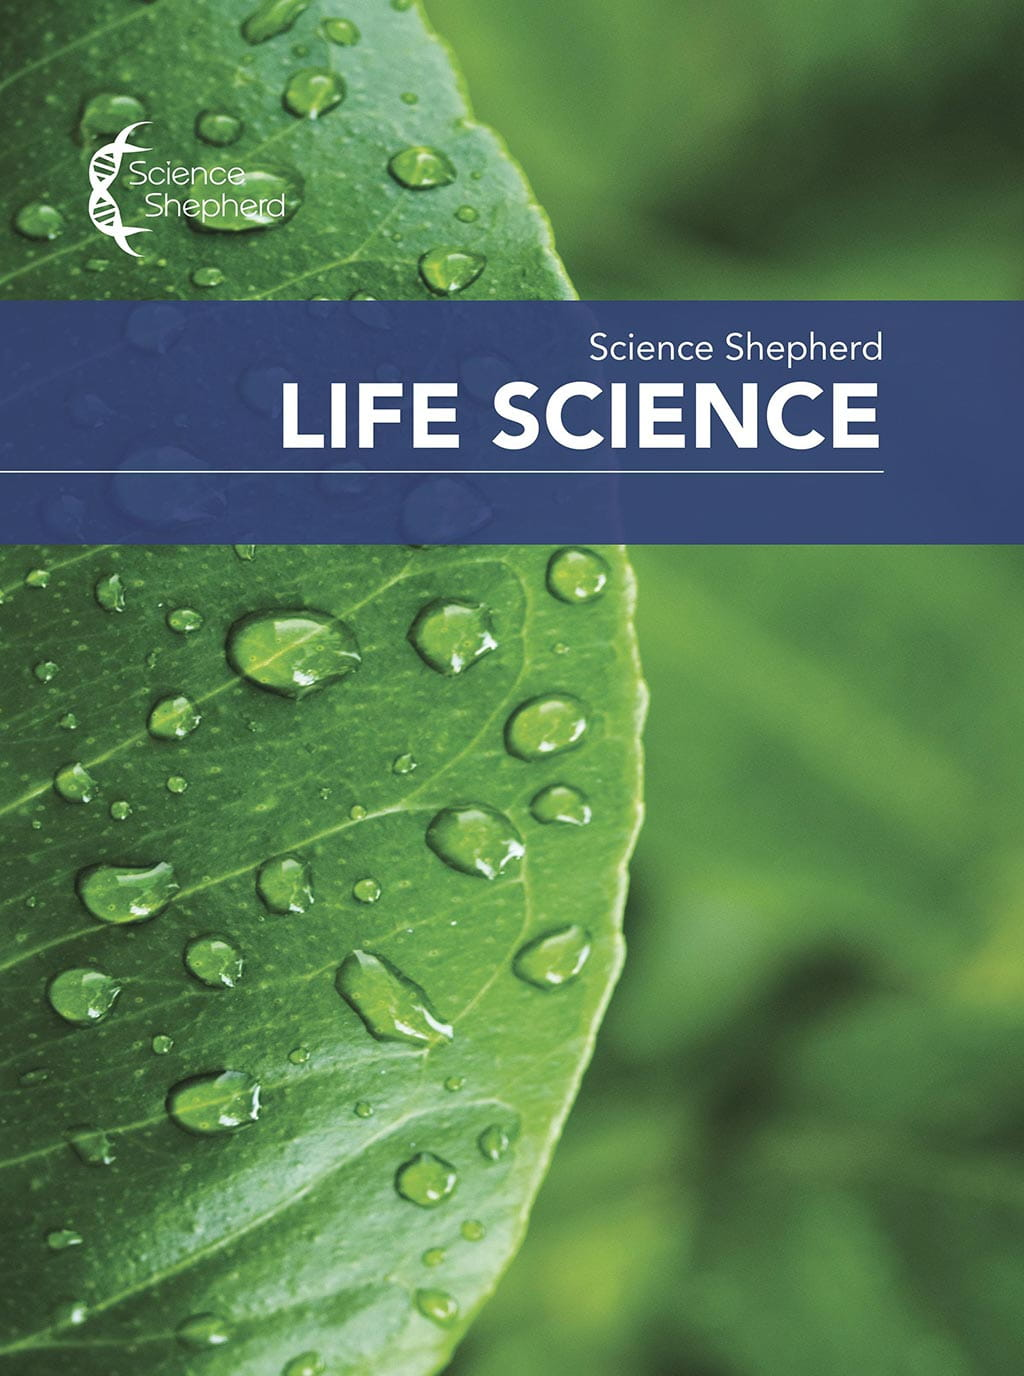 Science Shepherd Homeschol Life Science Curriculum for Middle School